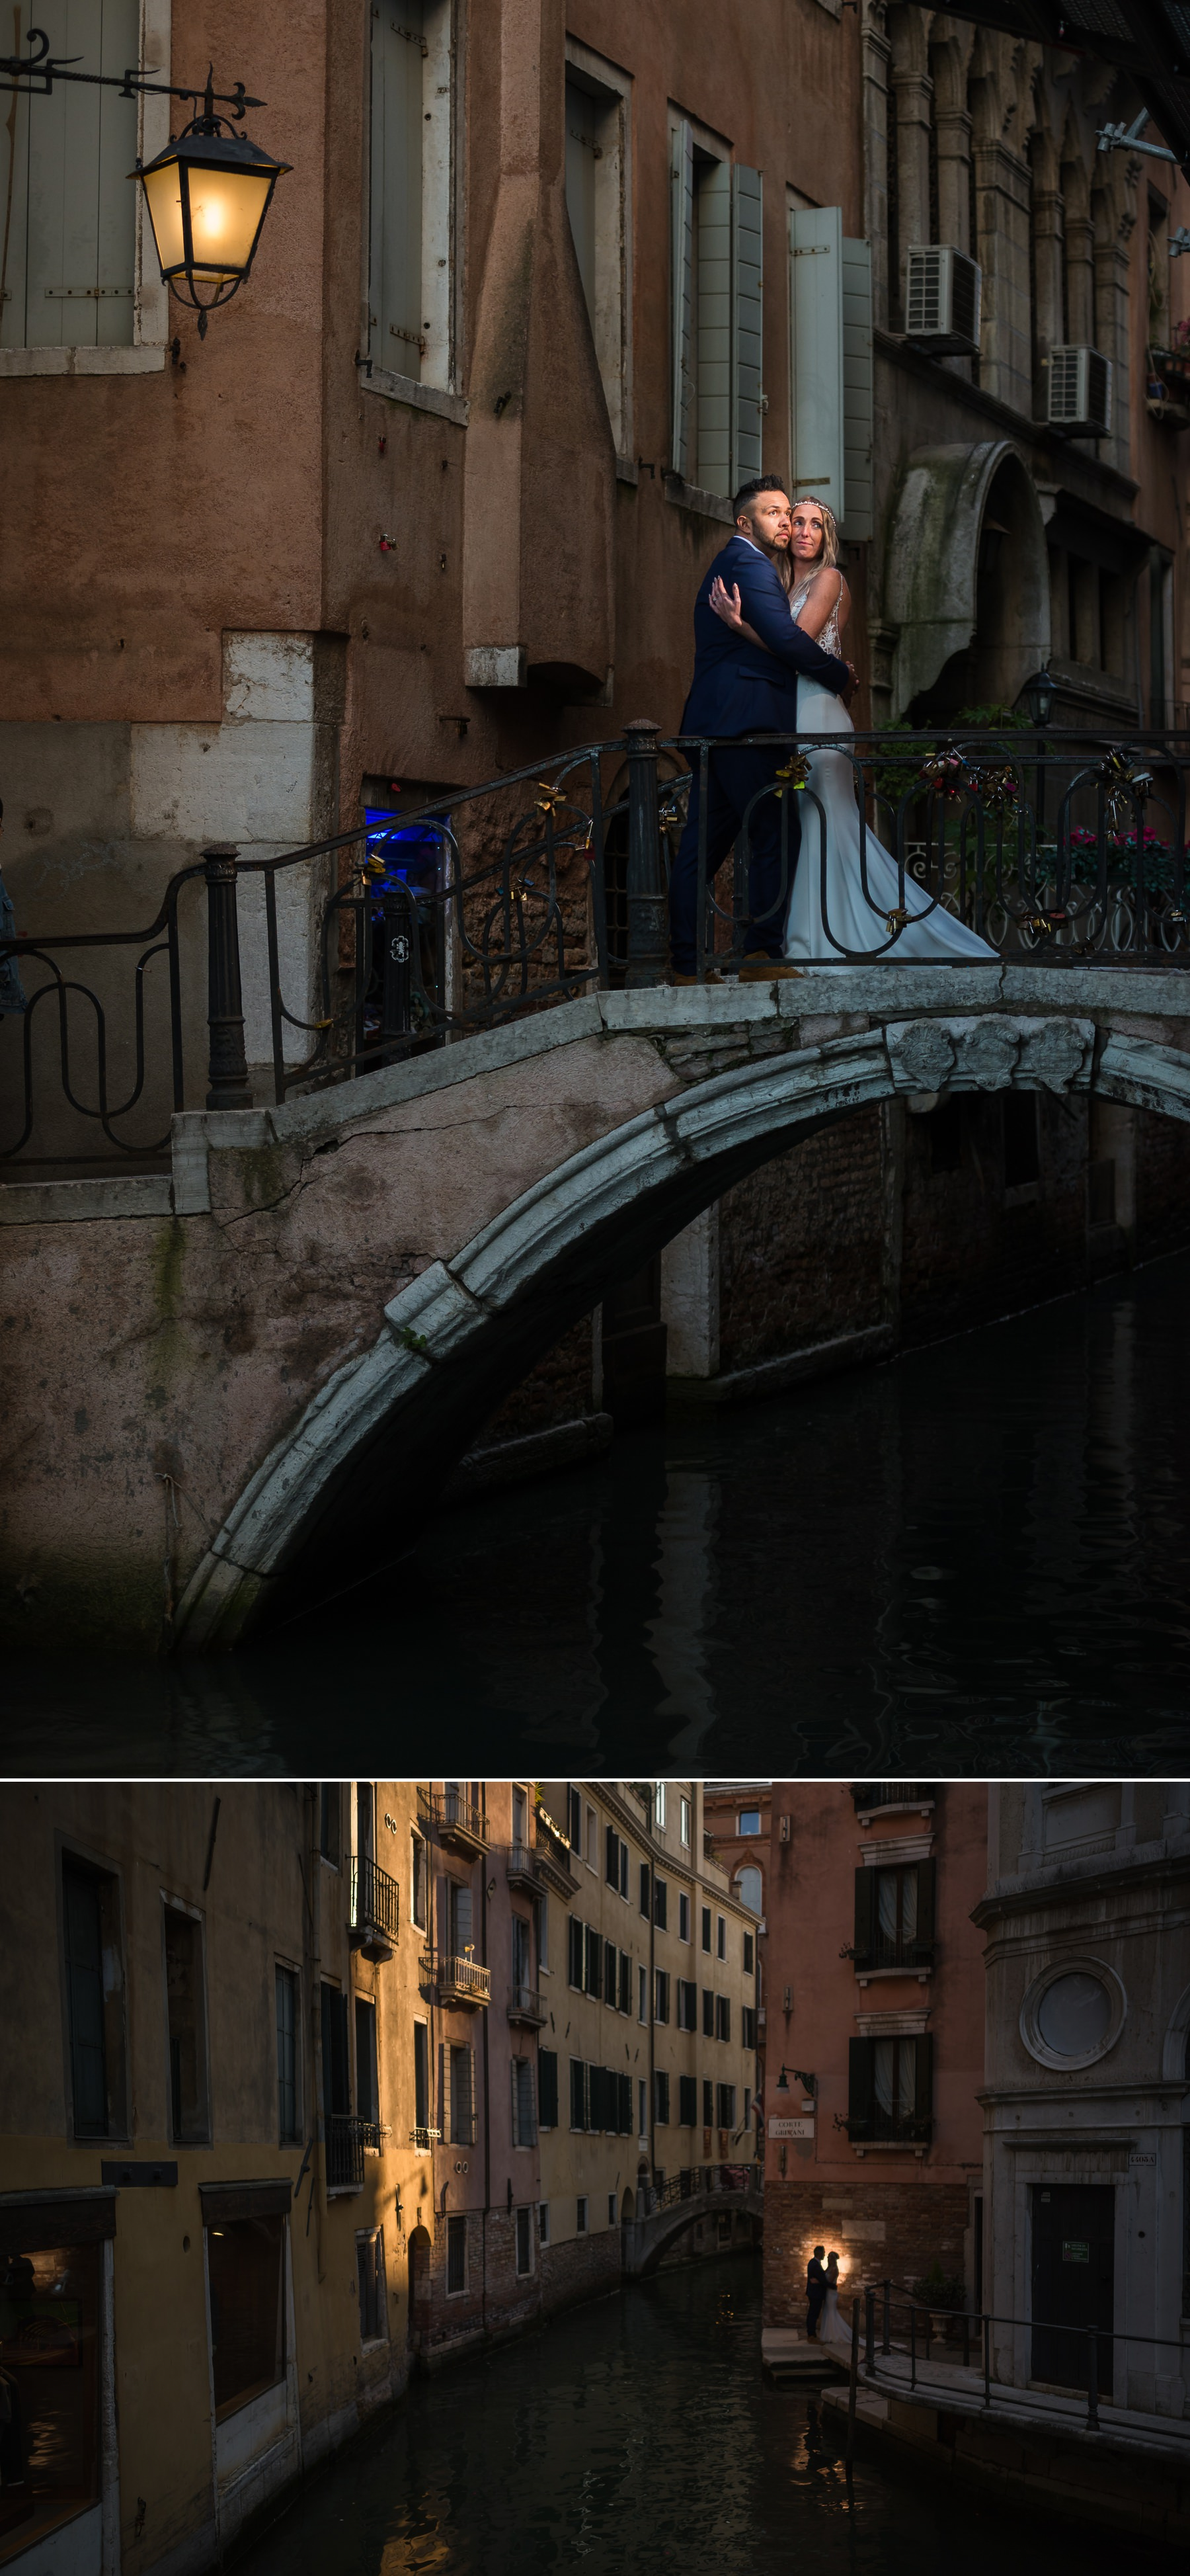 Palazzo Cavalli Venice bride and groom together on one of the bridges in venice